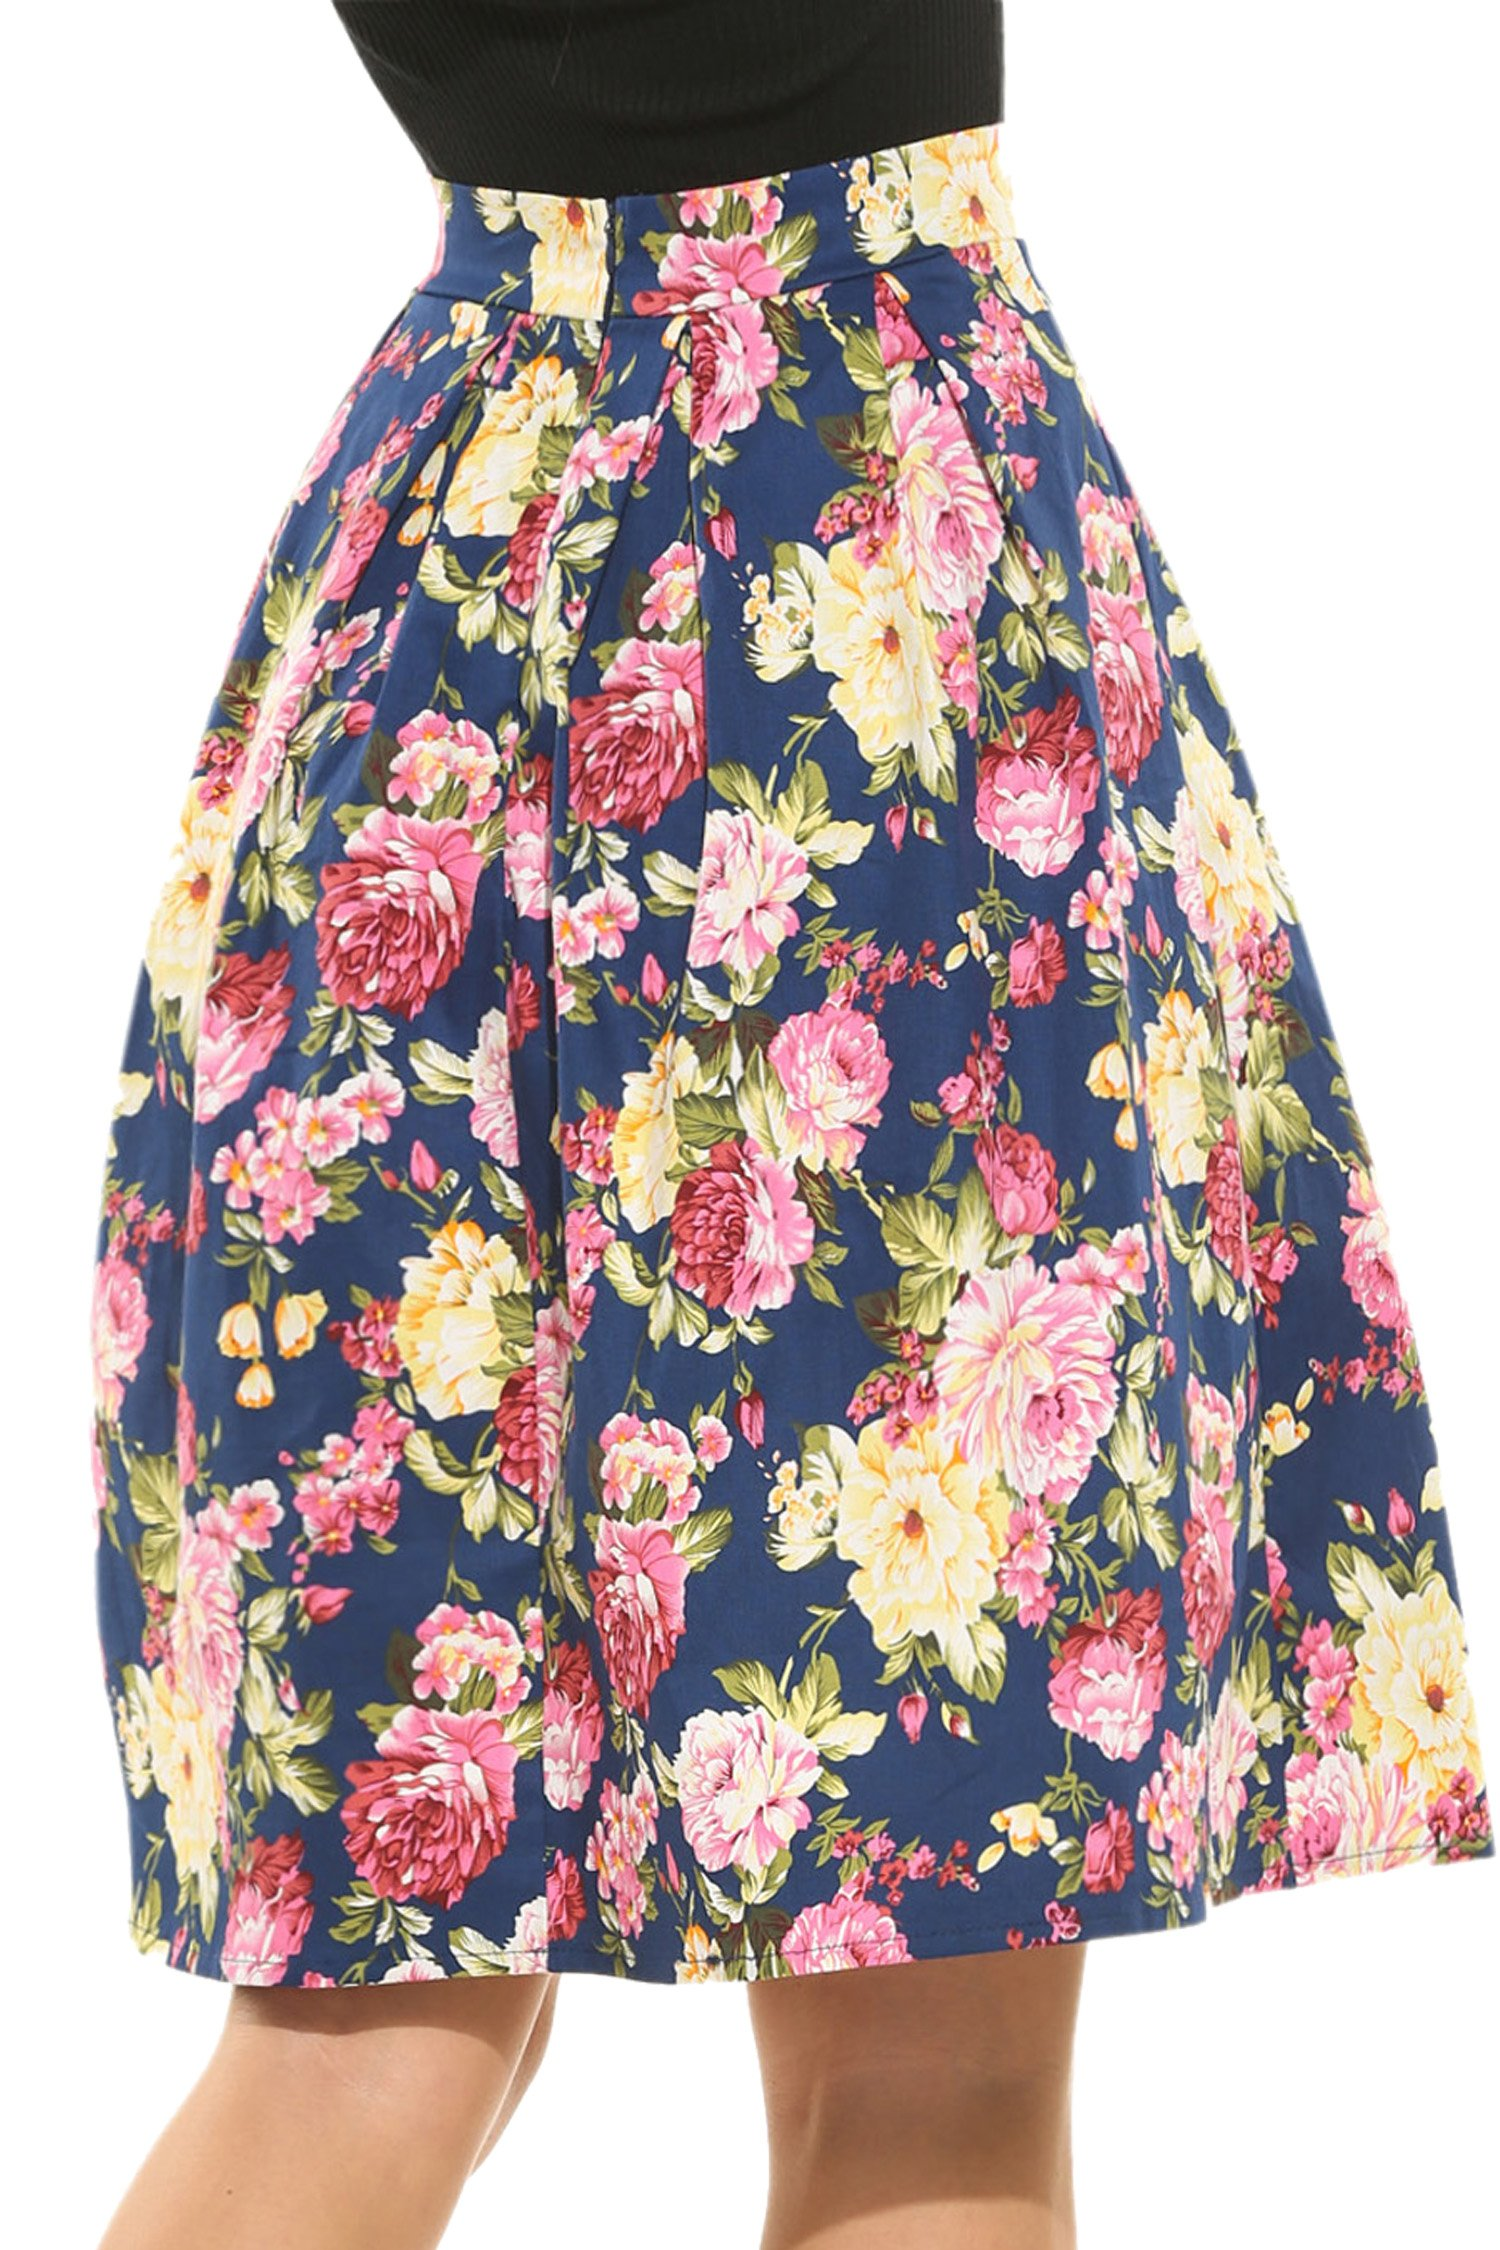 Meaneor Women's High Waisted A line Street Skirt Skater Pleated Full Midi Skirt by Meaneor (Image #2)